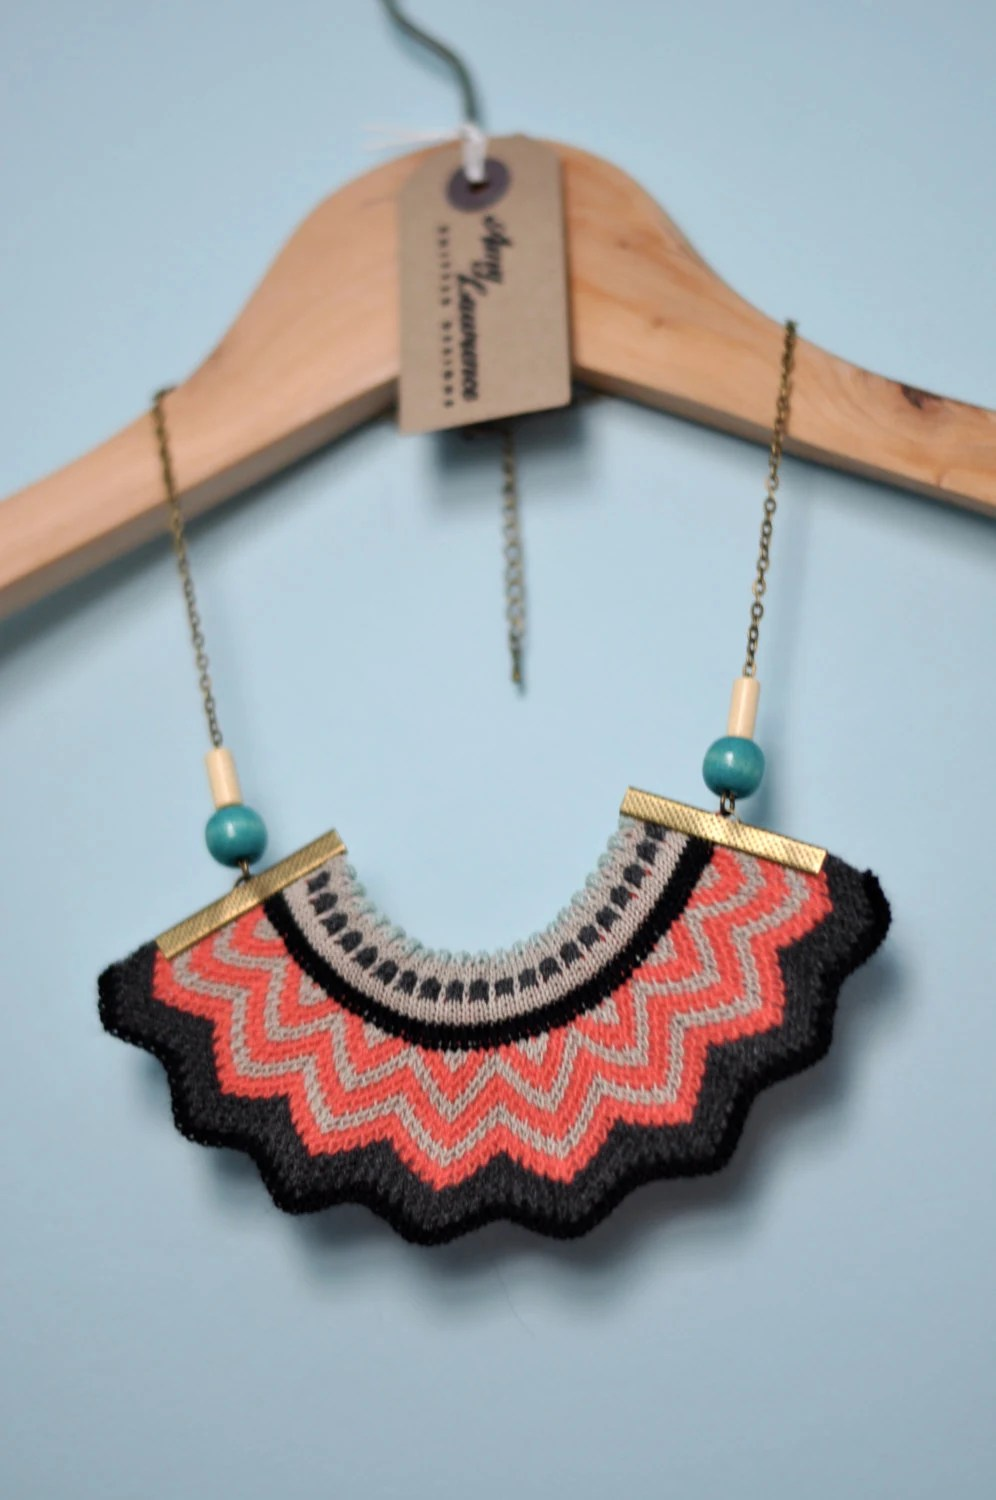 Chevron Crown - knitted coral statement necklace with chain and bead detail